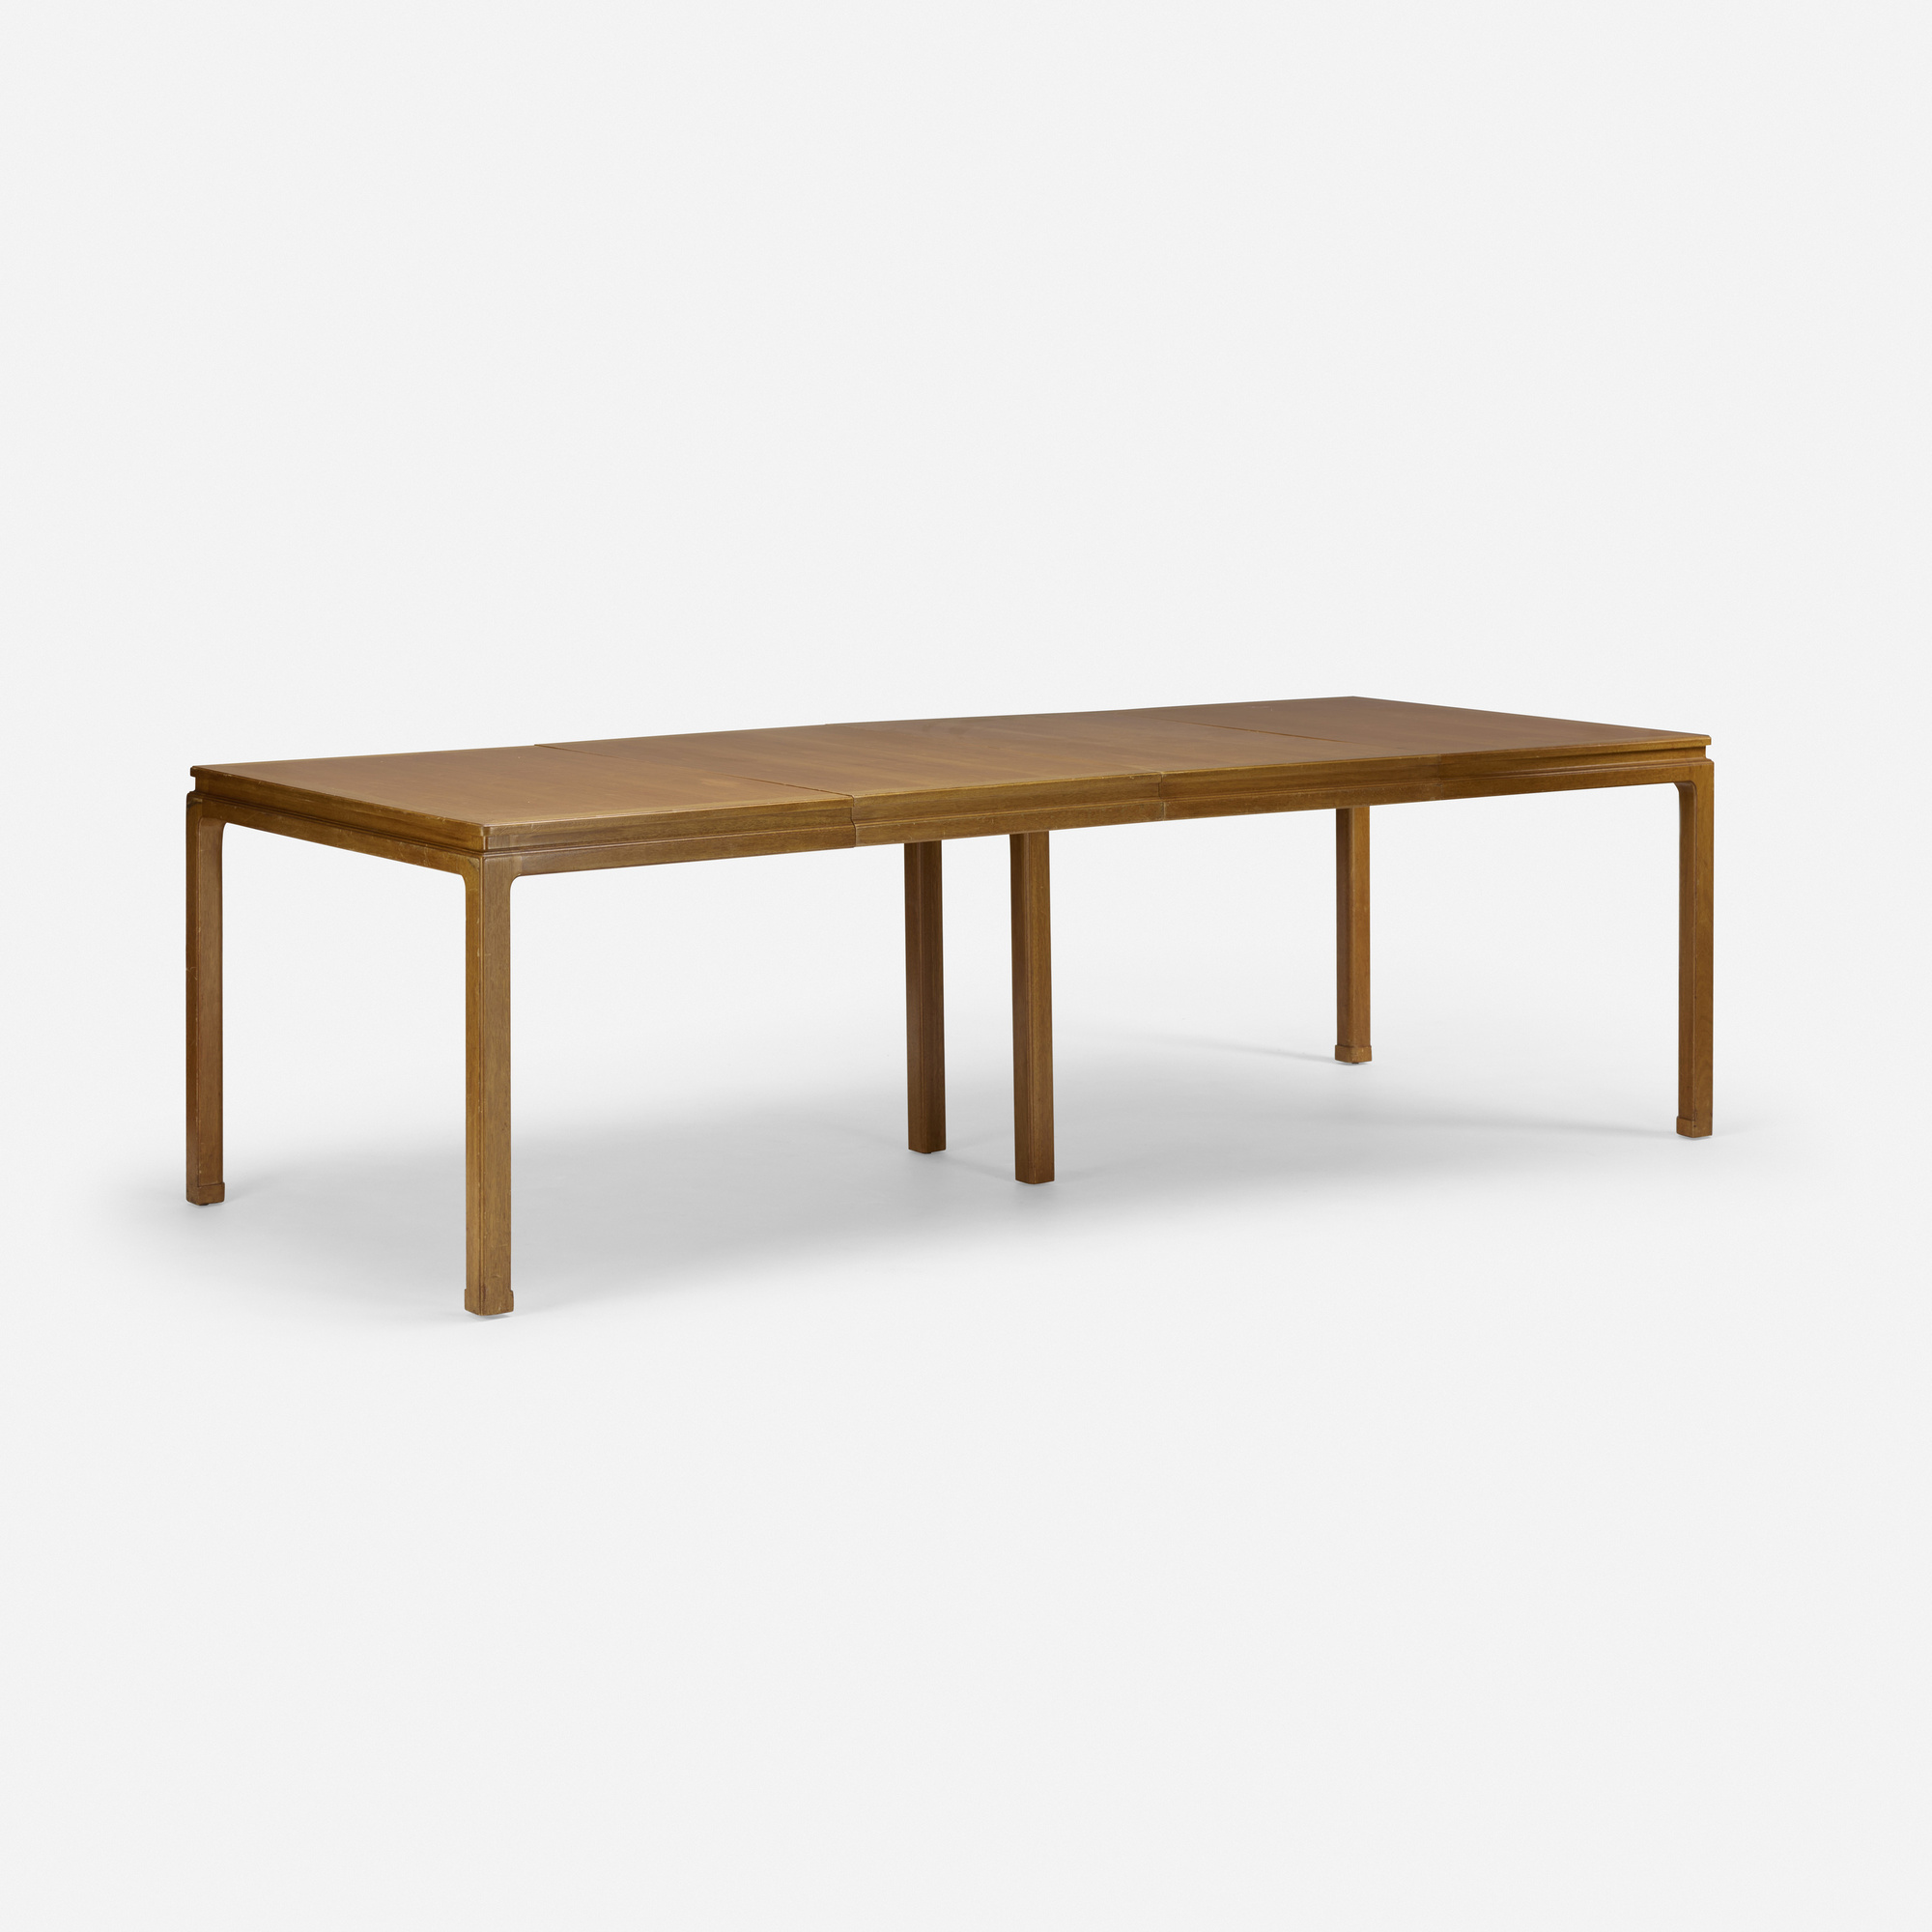 808: Edward Wormley / dining table (2 of 3)